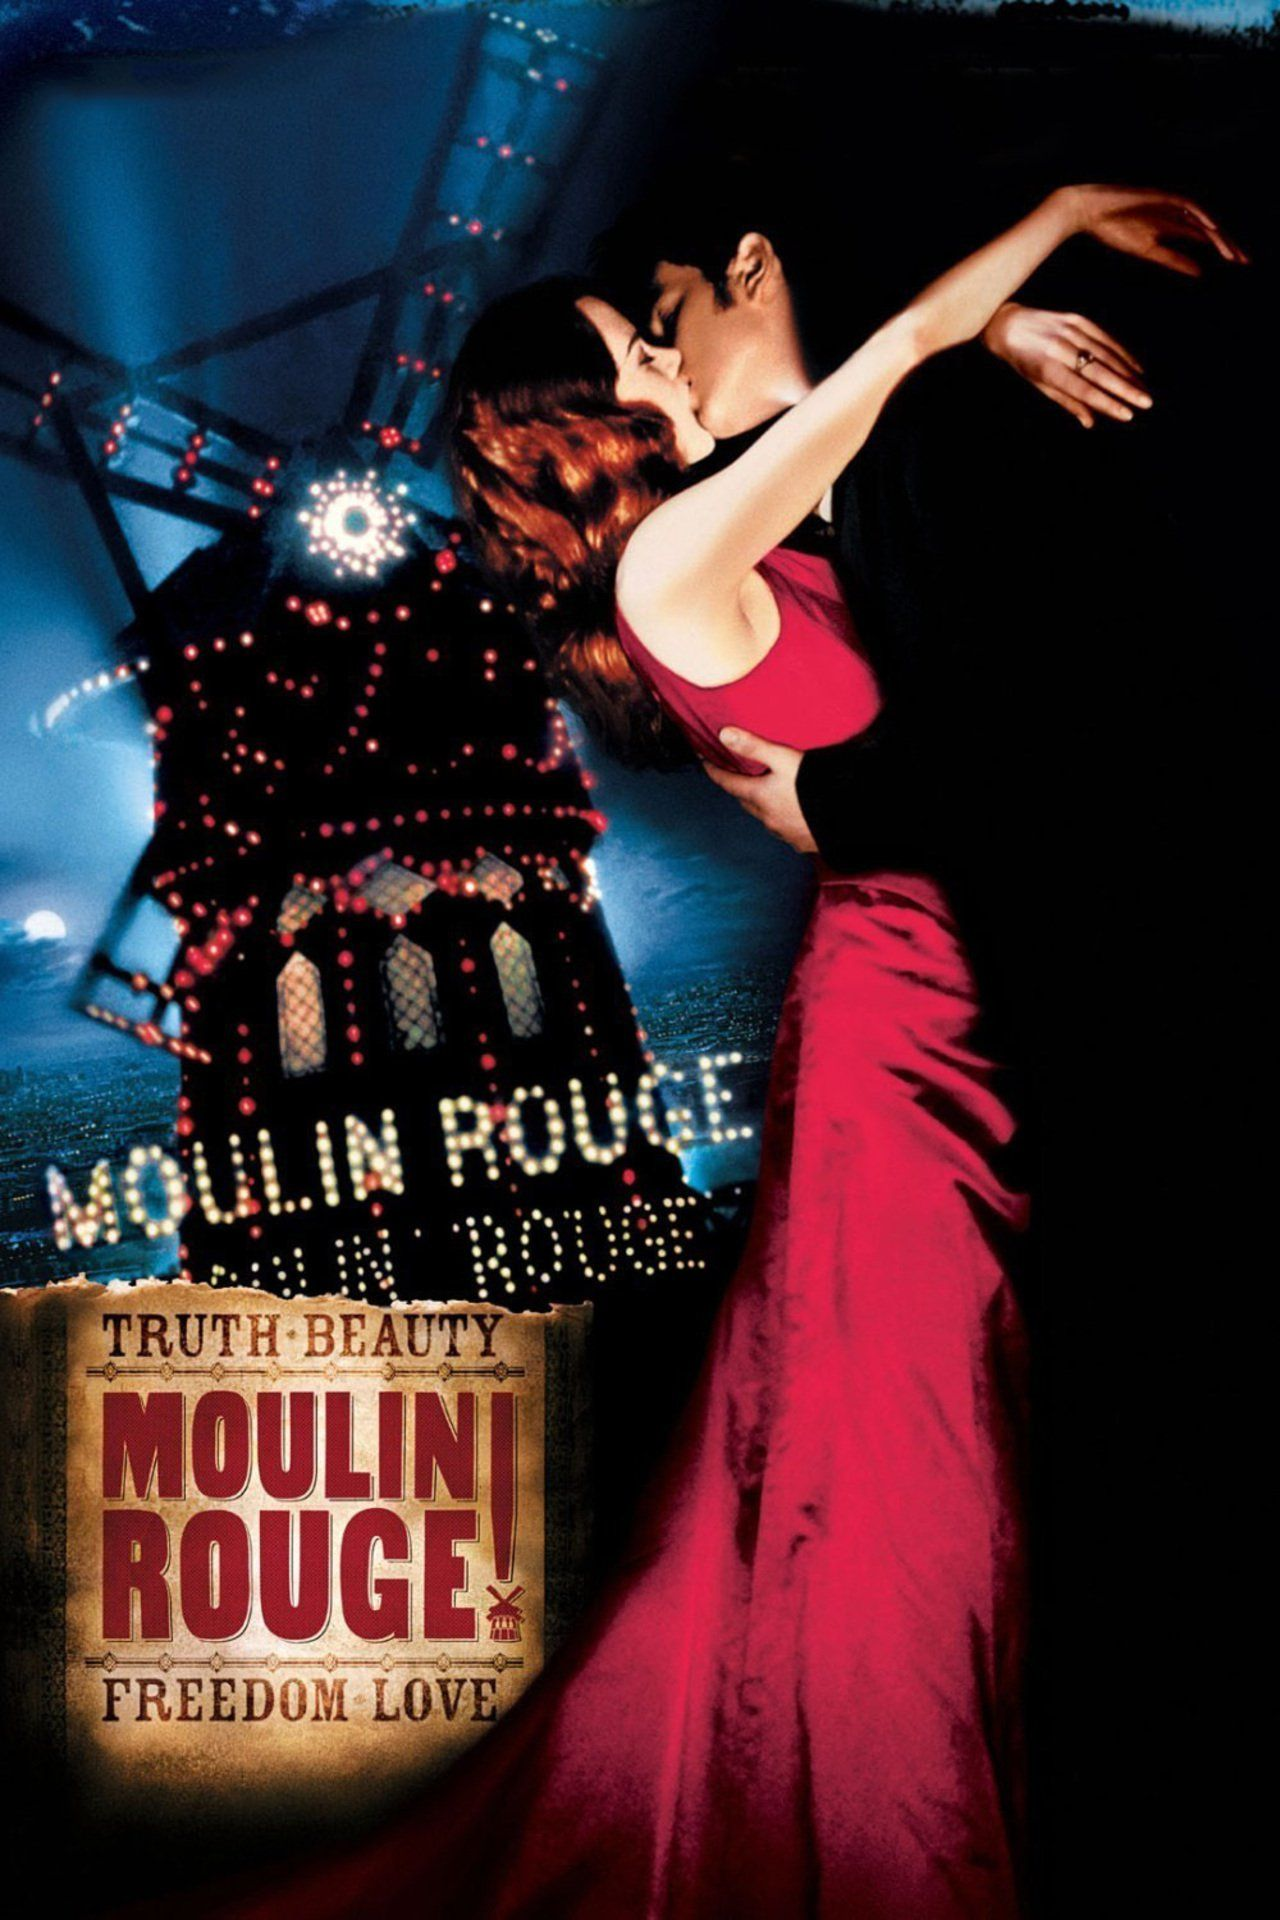 Idealistic Christian is drawn into the dark, fantastical underworld of the Parisian nightclub, the Moulin Rouge. In this seedy but glamorous haven of sex, drugs and electricity, the poet-innocent finds himself plunged into a passionate but ultimately tragic love affair with the club's highest paid star and the city's most famous courtesan, Satin.